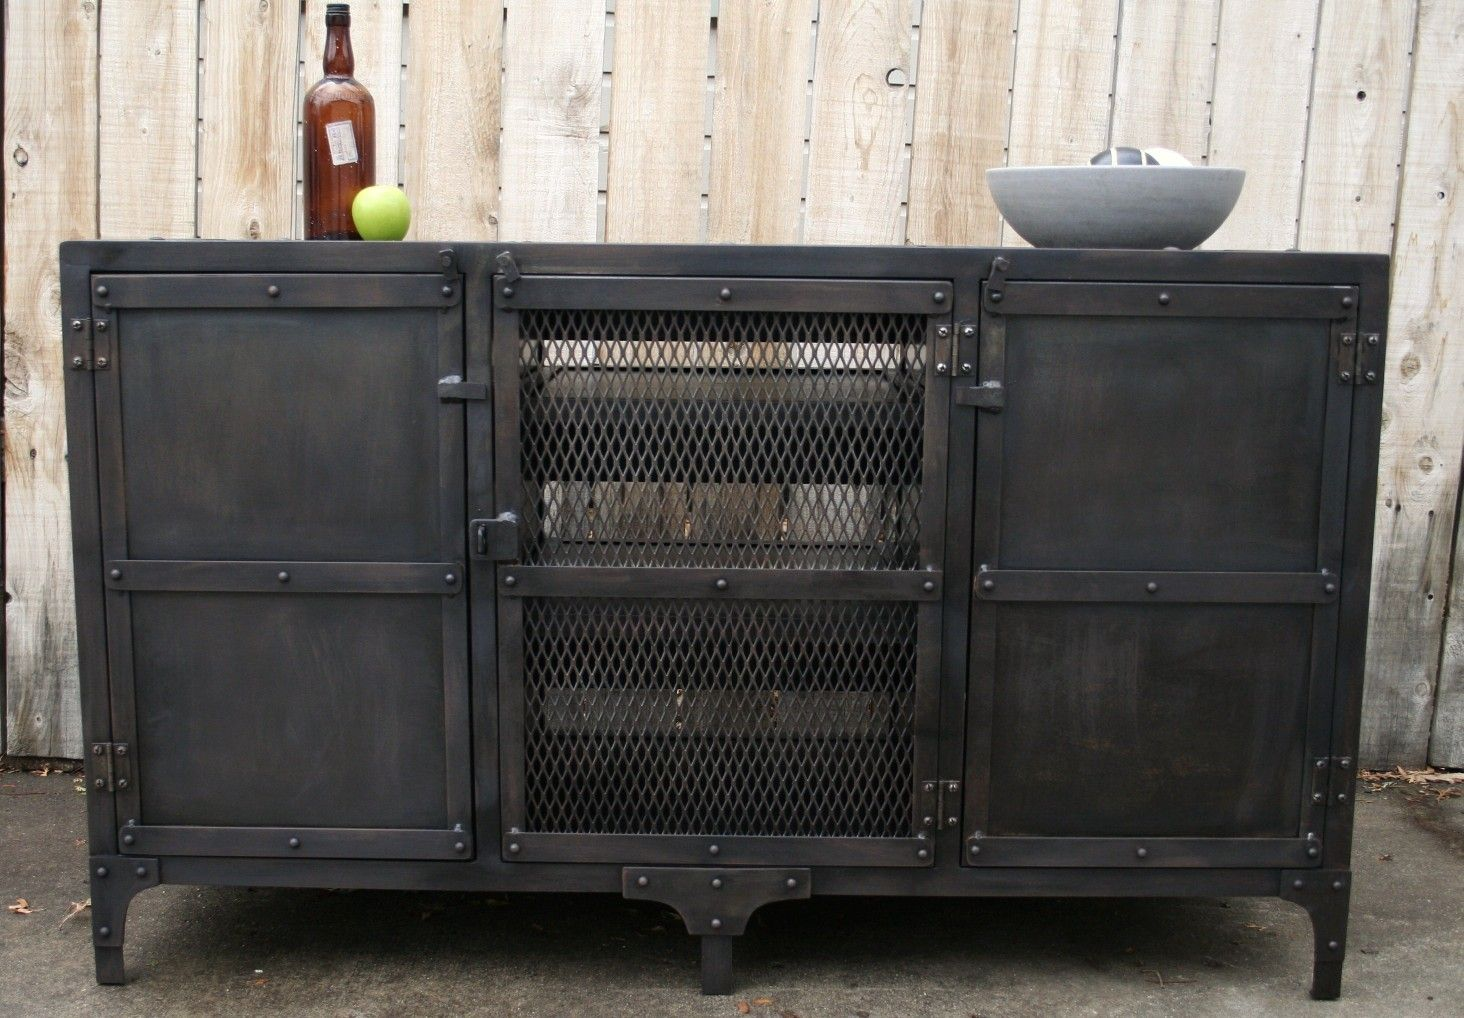 old designs weston for design target metal console ideas modern room hdb living cabinet cabinets creative bedroom diy locker small wall table fireplace decor accent full size